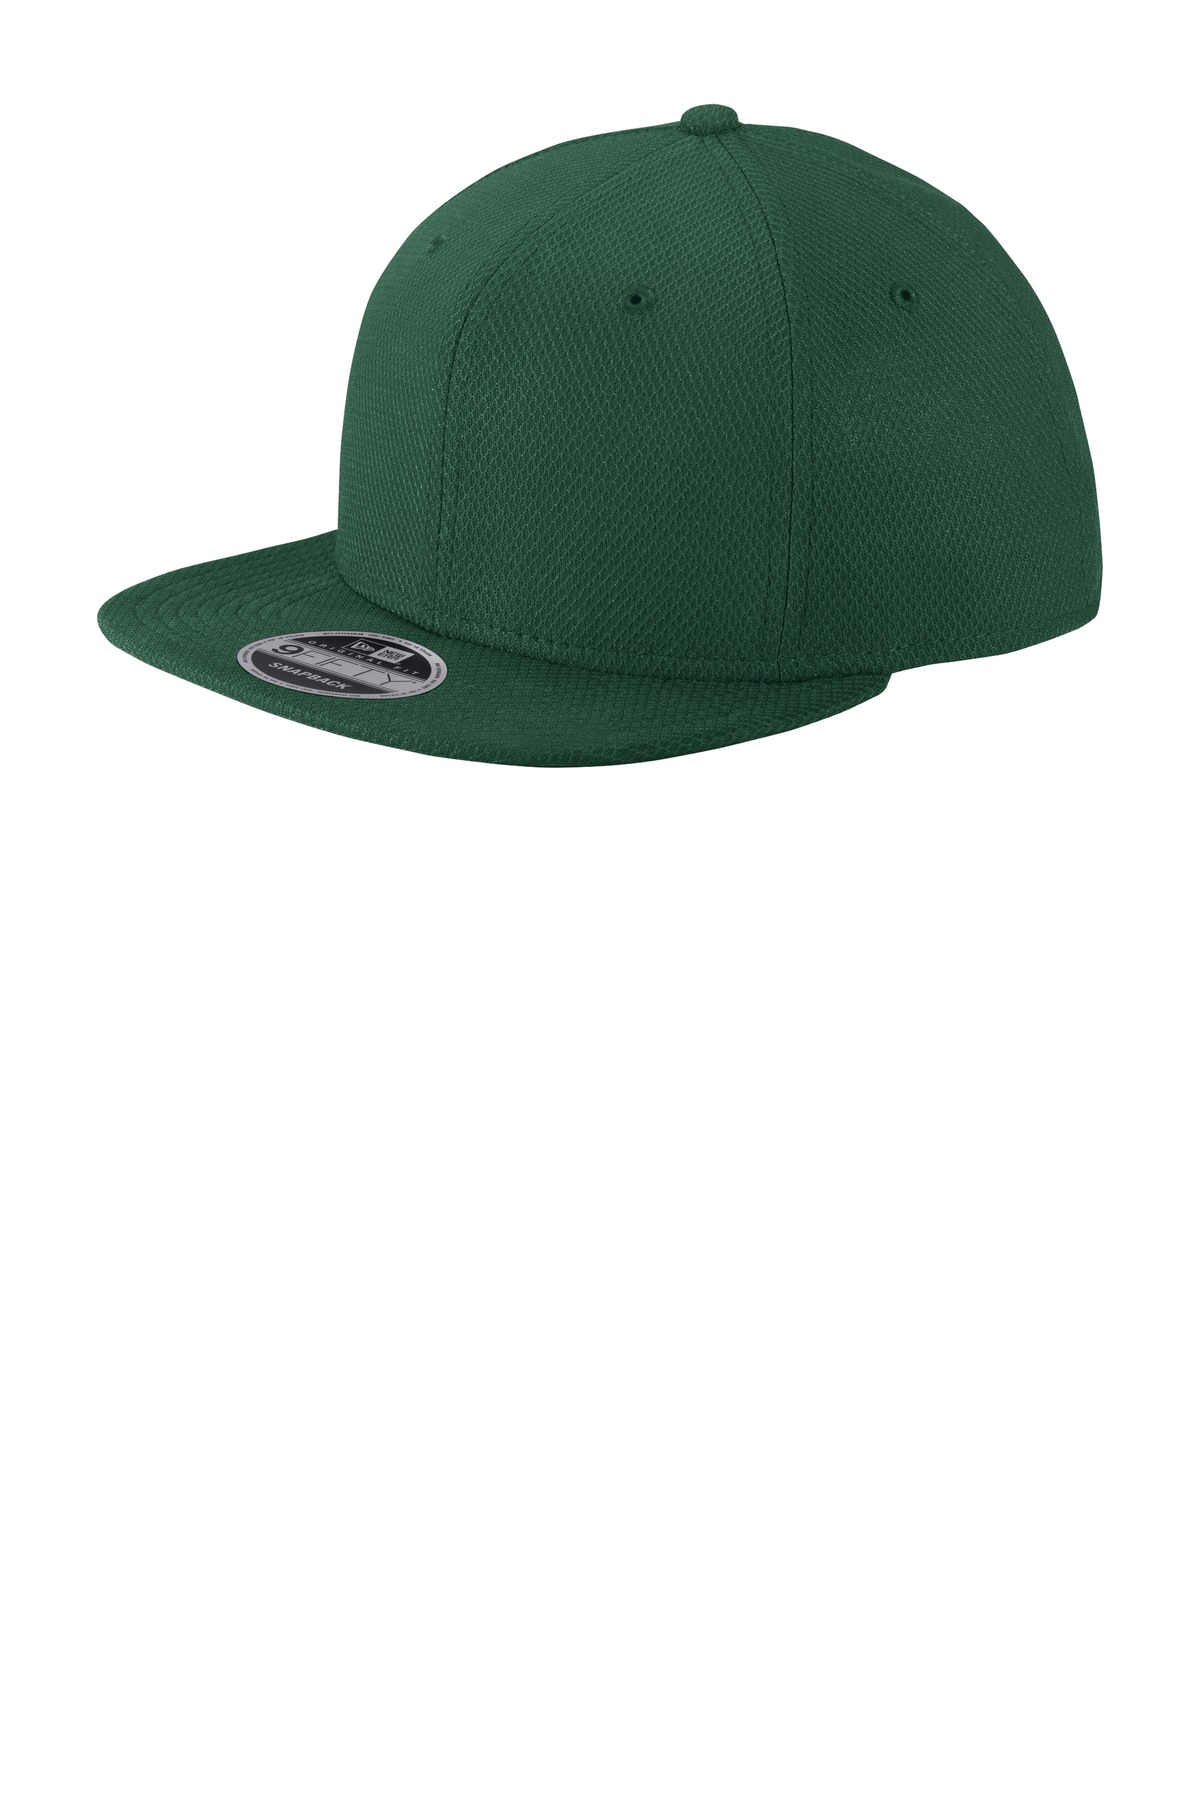 New Era  ®  Original Fit Diamond Era Flat Bill Snapback Cap. NE404 - Dark Green